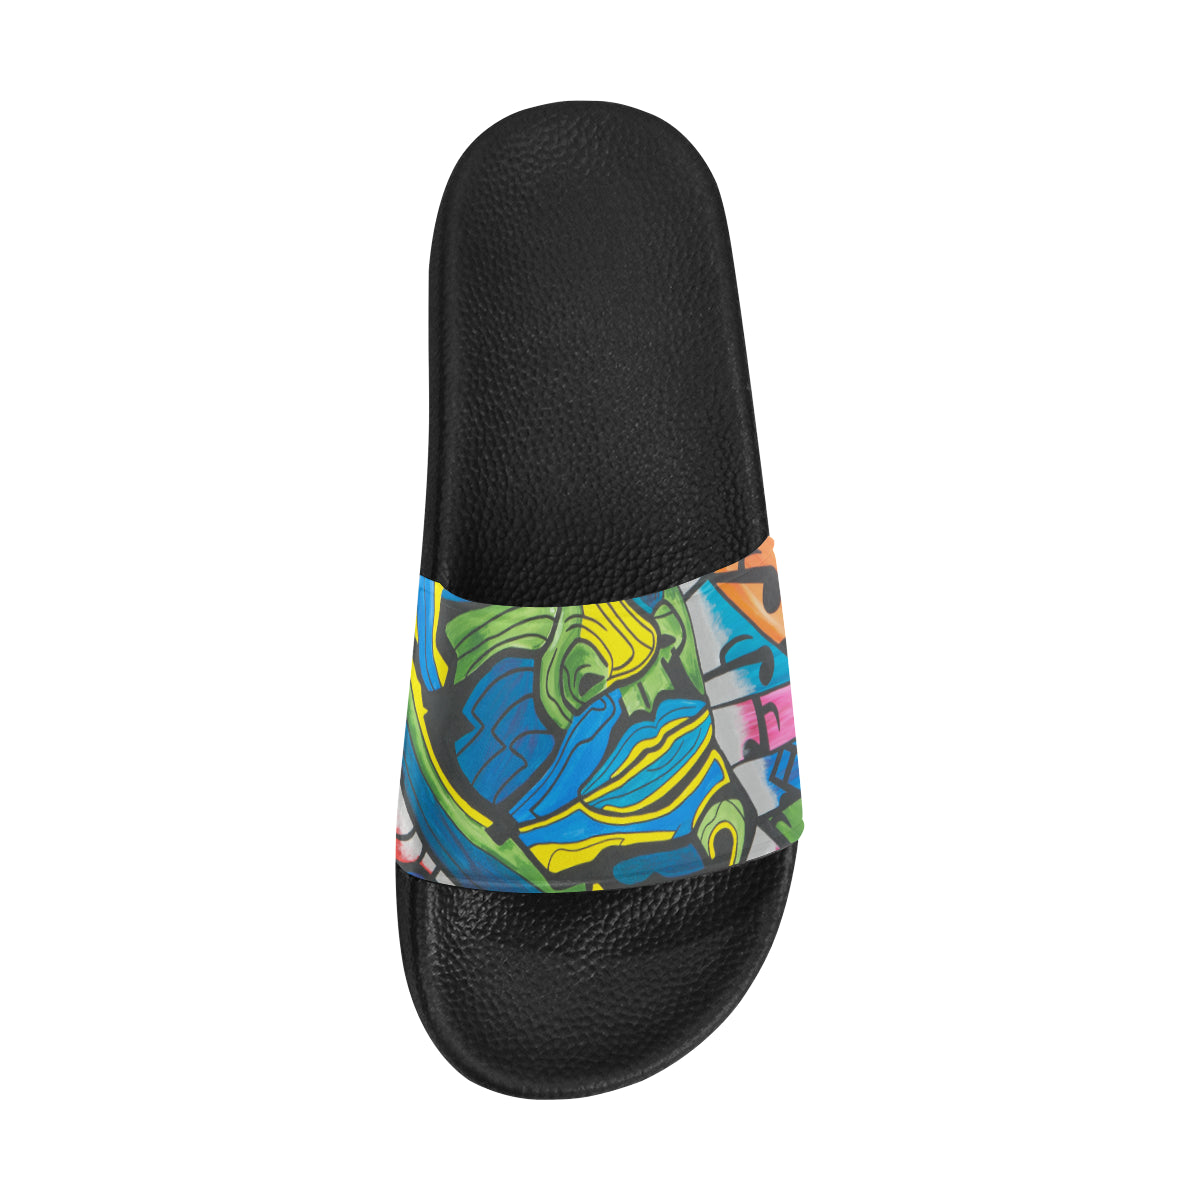 Wise Man- Women's Slides